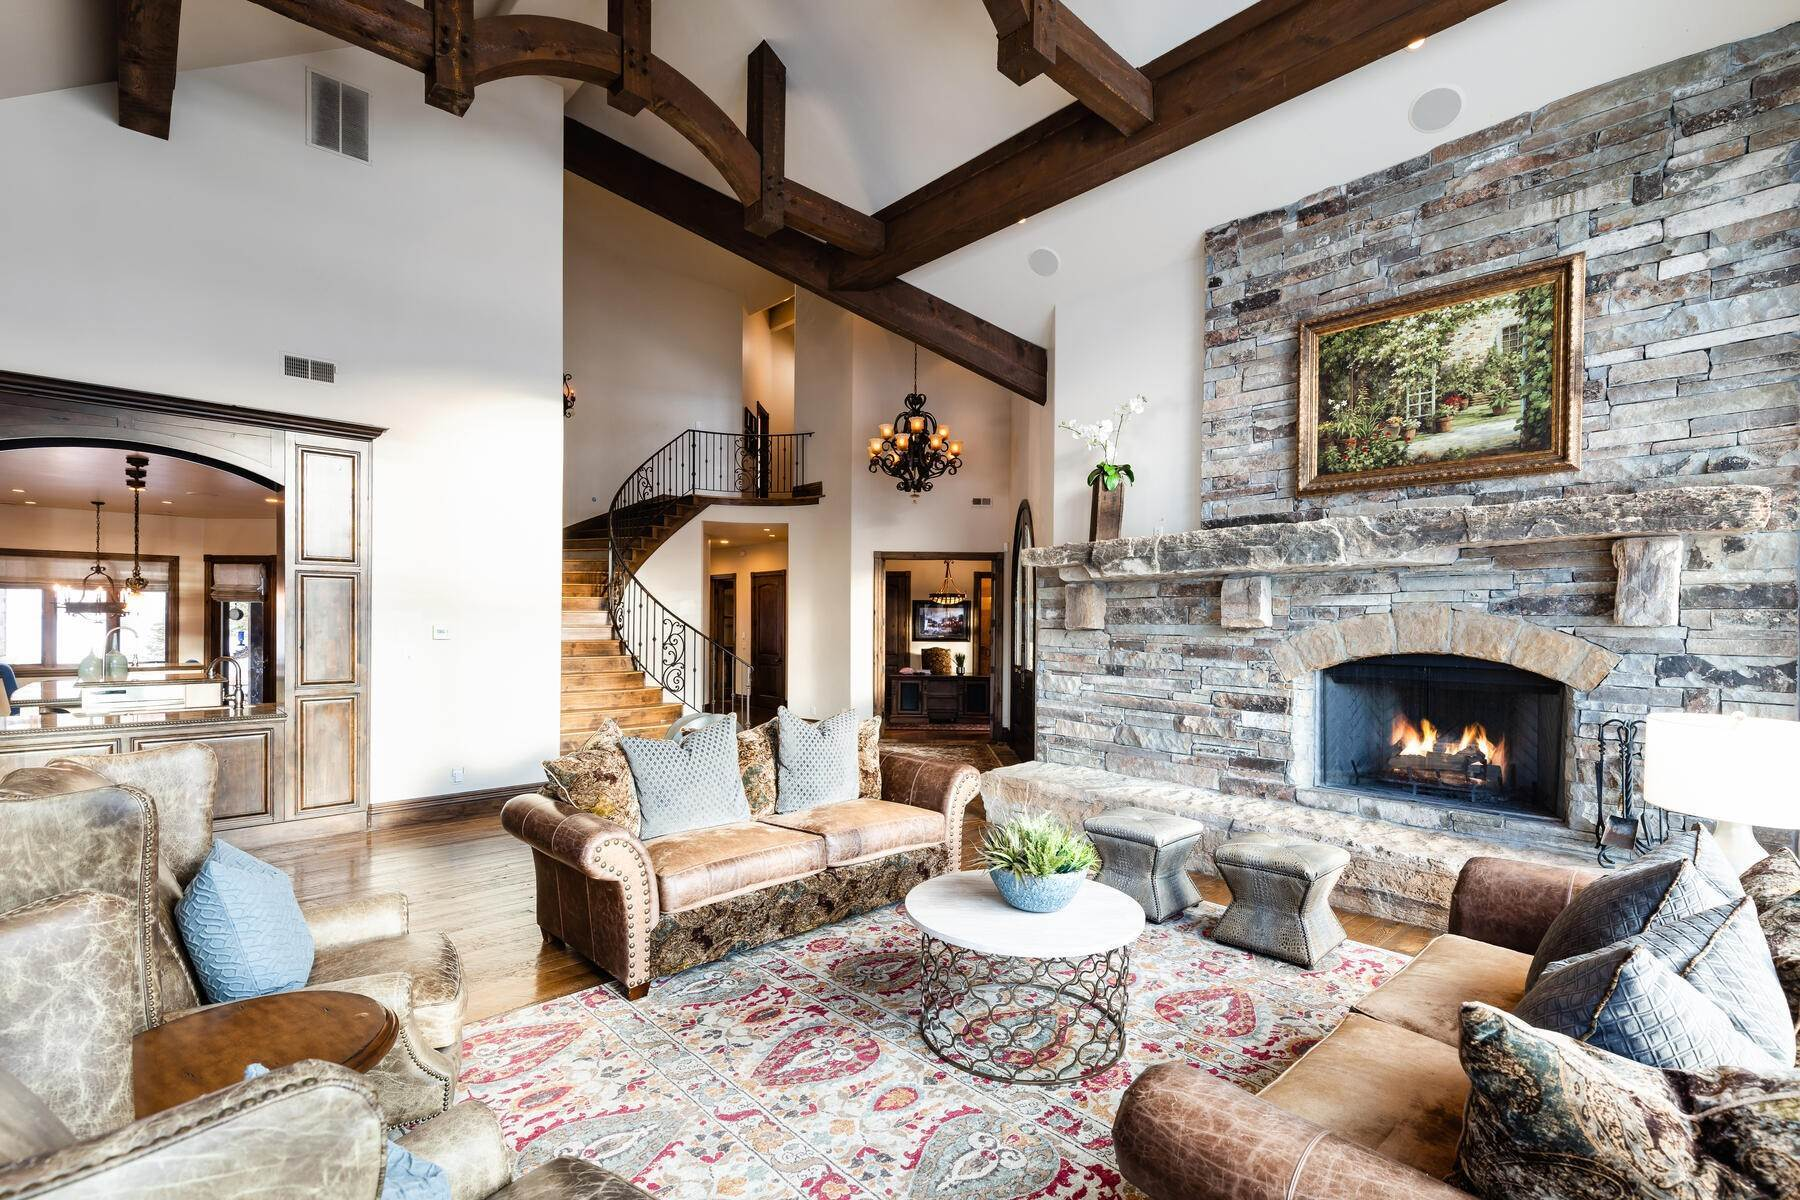 4. Single Family Homes for Sale at Rare Ranch Creek Estates Home Boasts over 3 Acres with Unparalleled Views 4400 N Ranch Creek Ln Park City, Utah 84098 United States